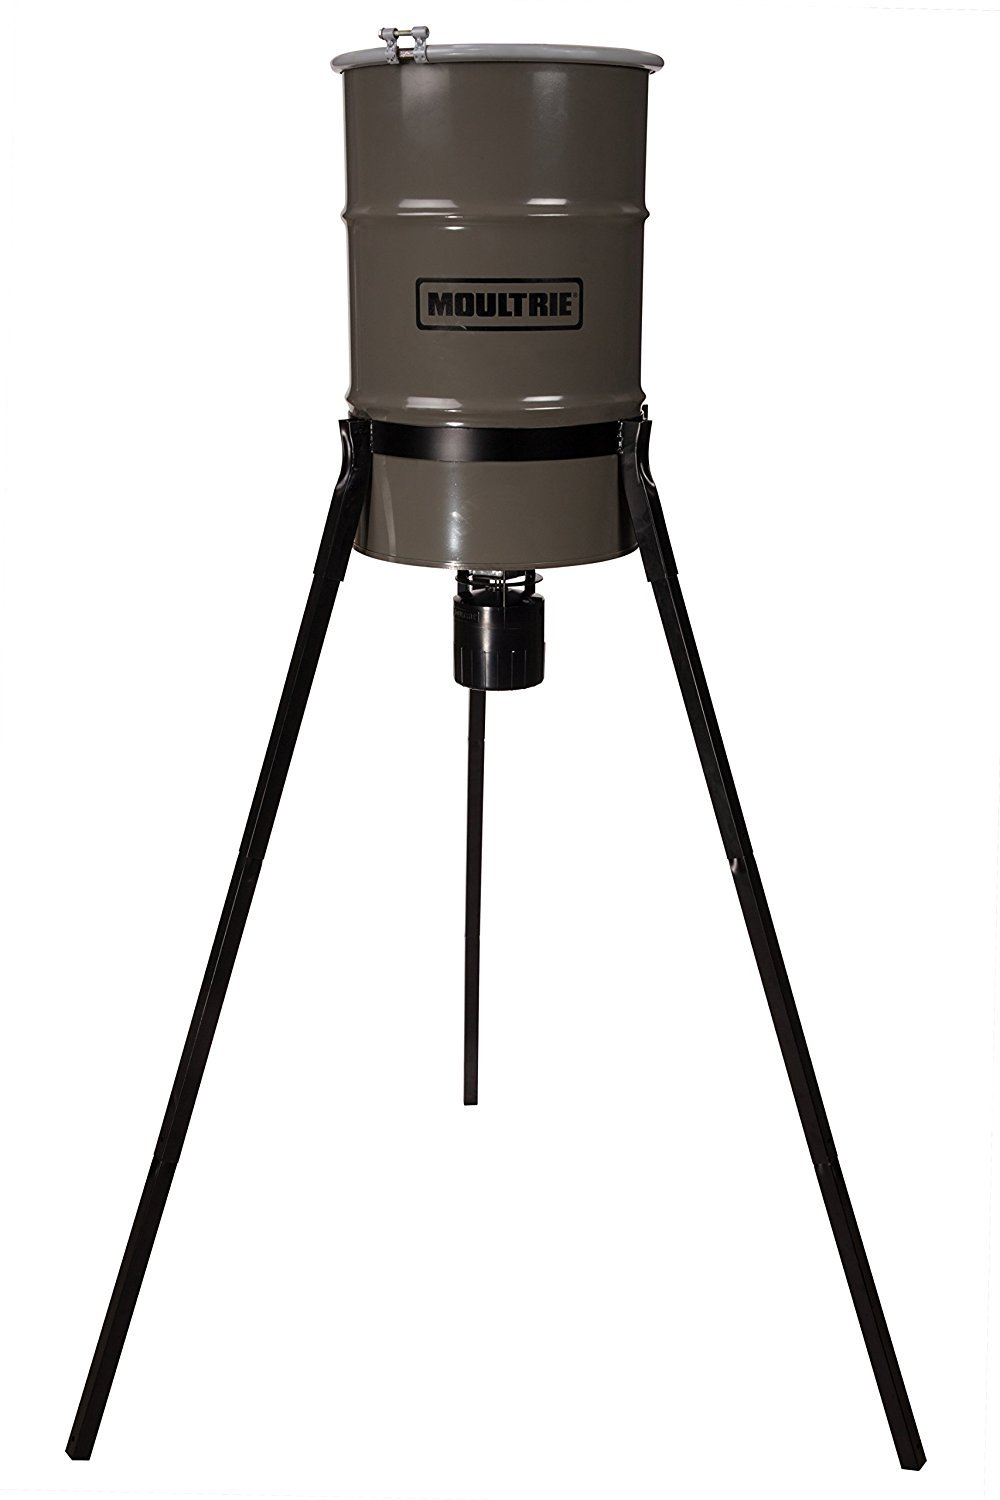 Moultrie 30-Gallon PRO Hunter Tripod